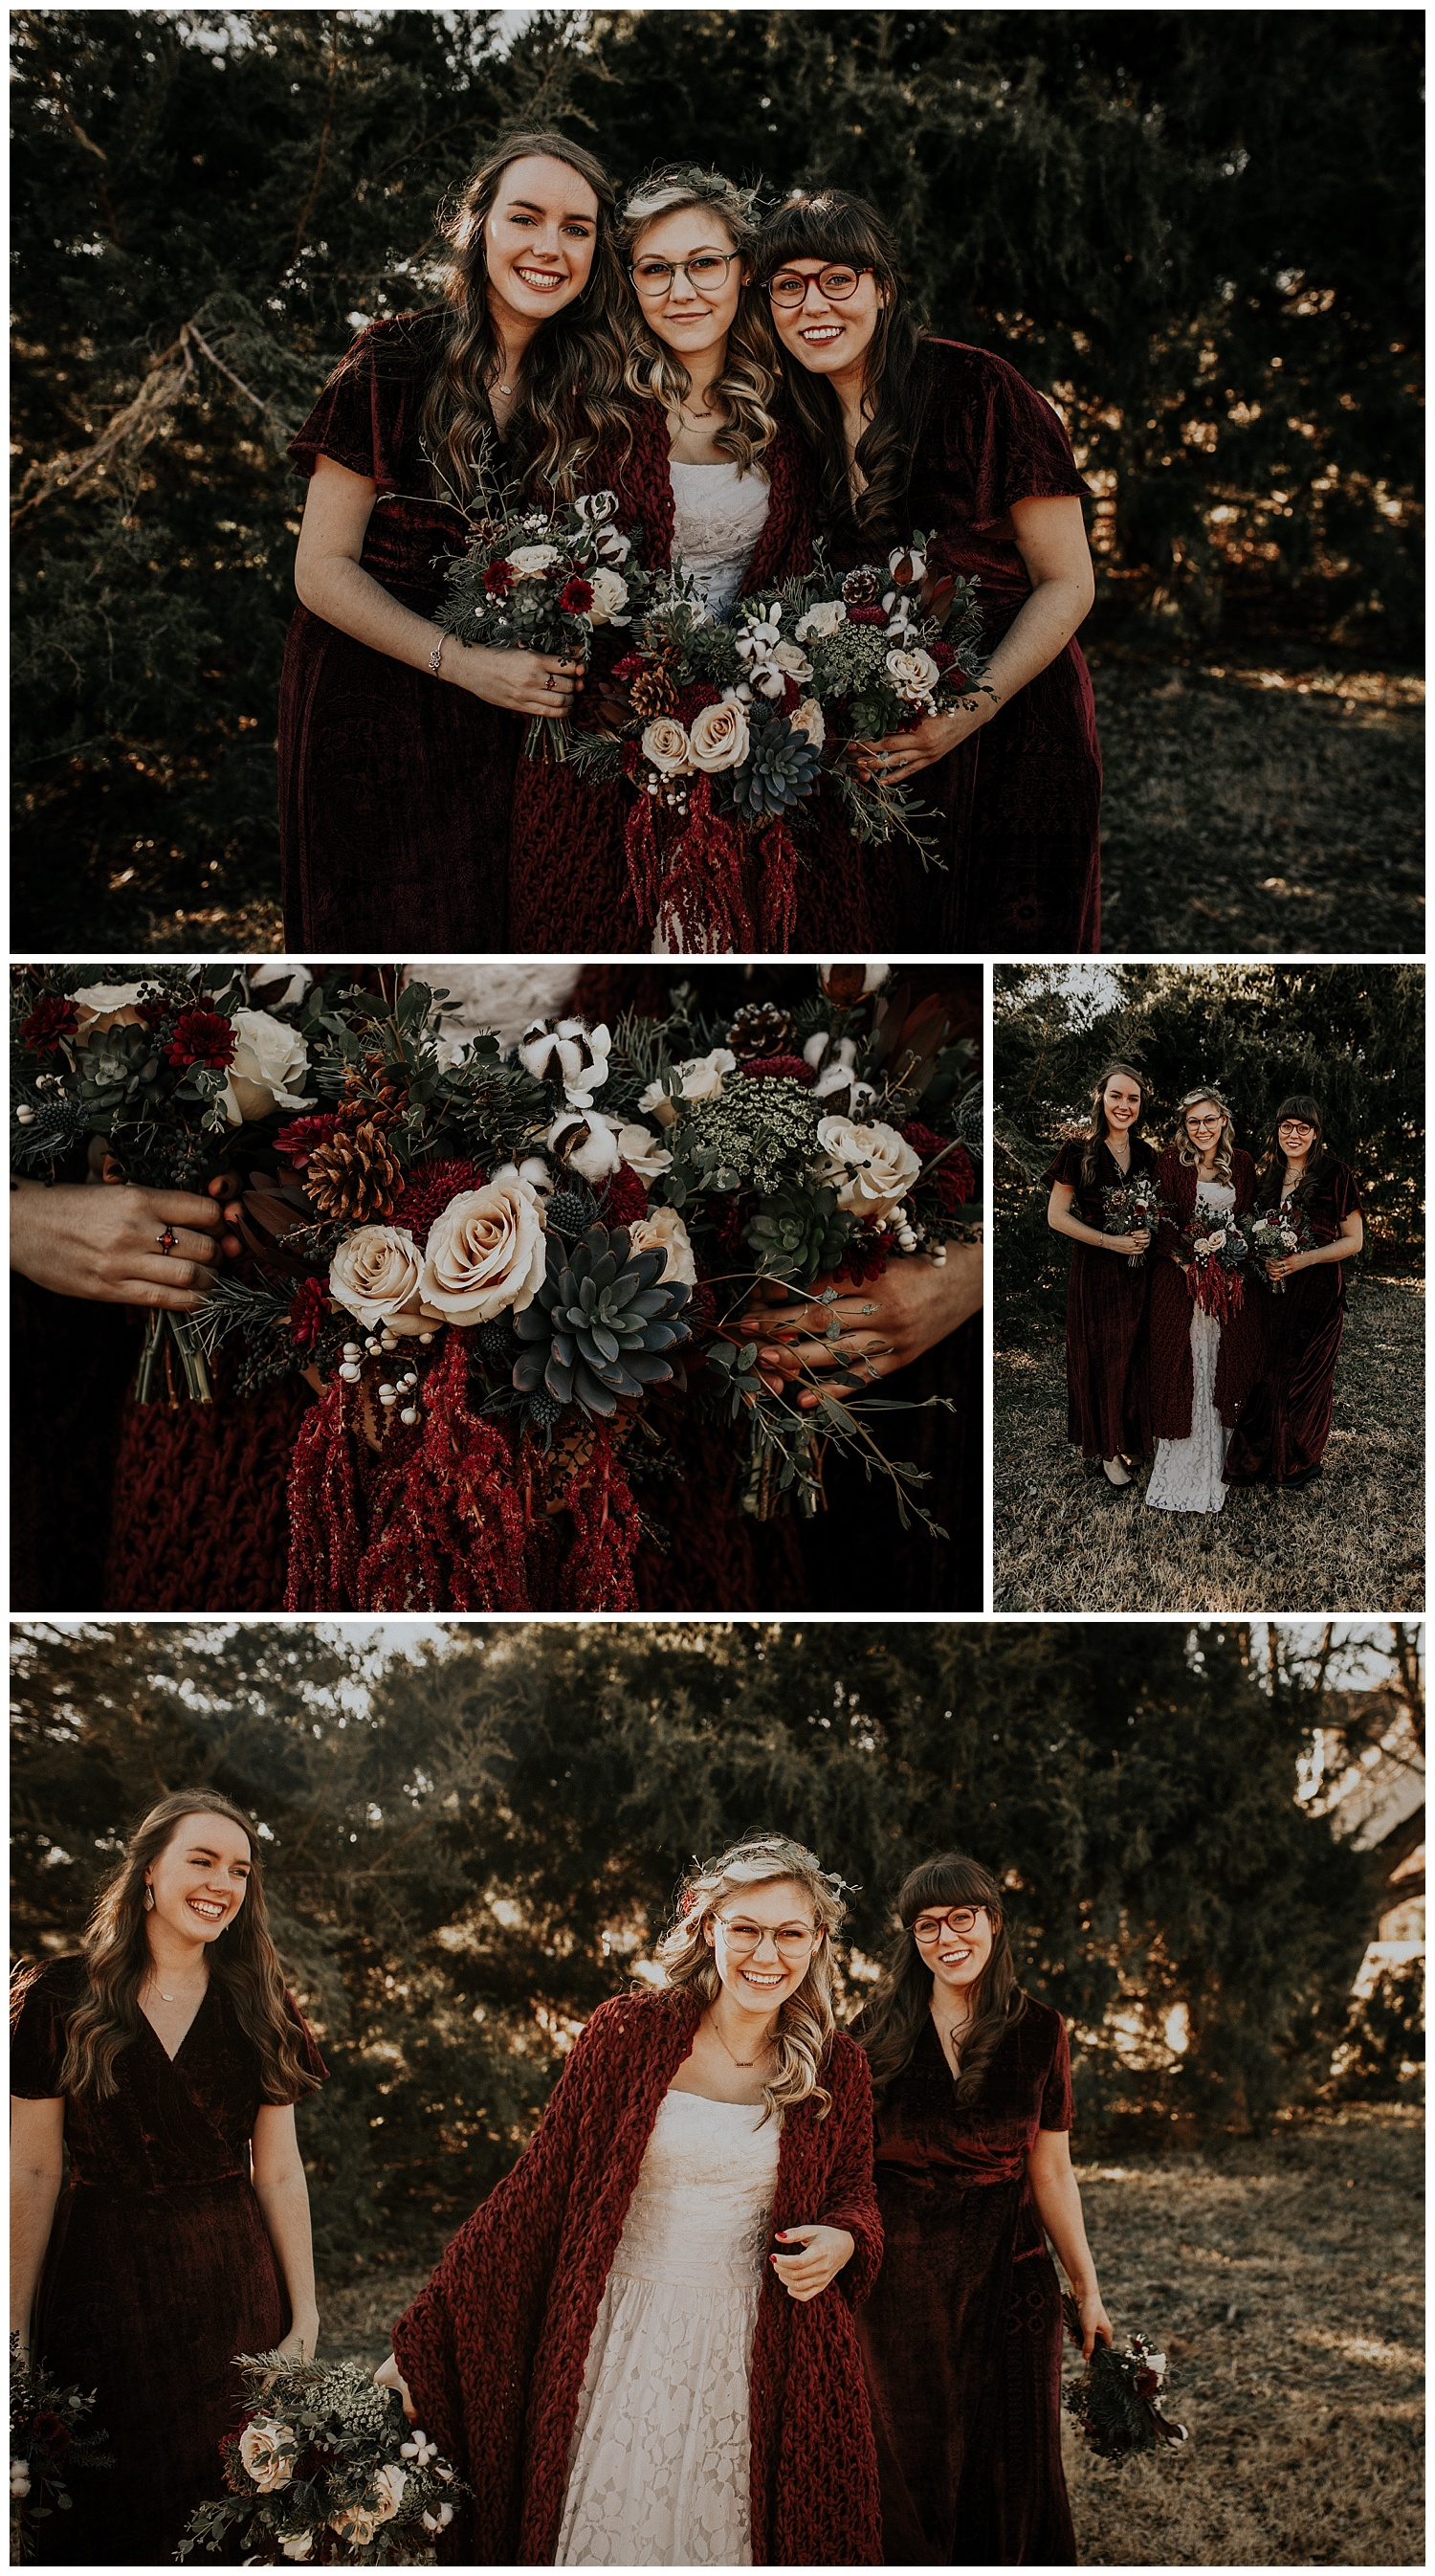 Laken-Mackenzie-Photography-Brownlee-Wedding-Dallas-Fort-Worth-Wedding-Photographer14.jpg